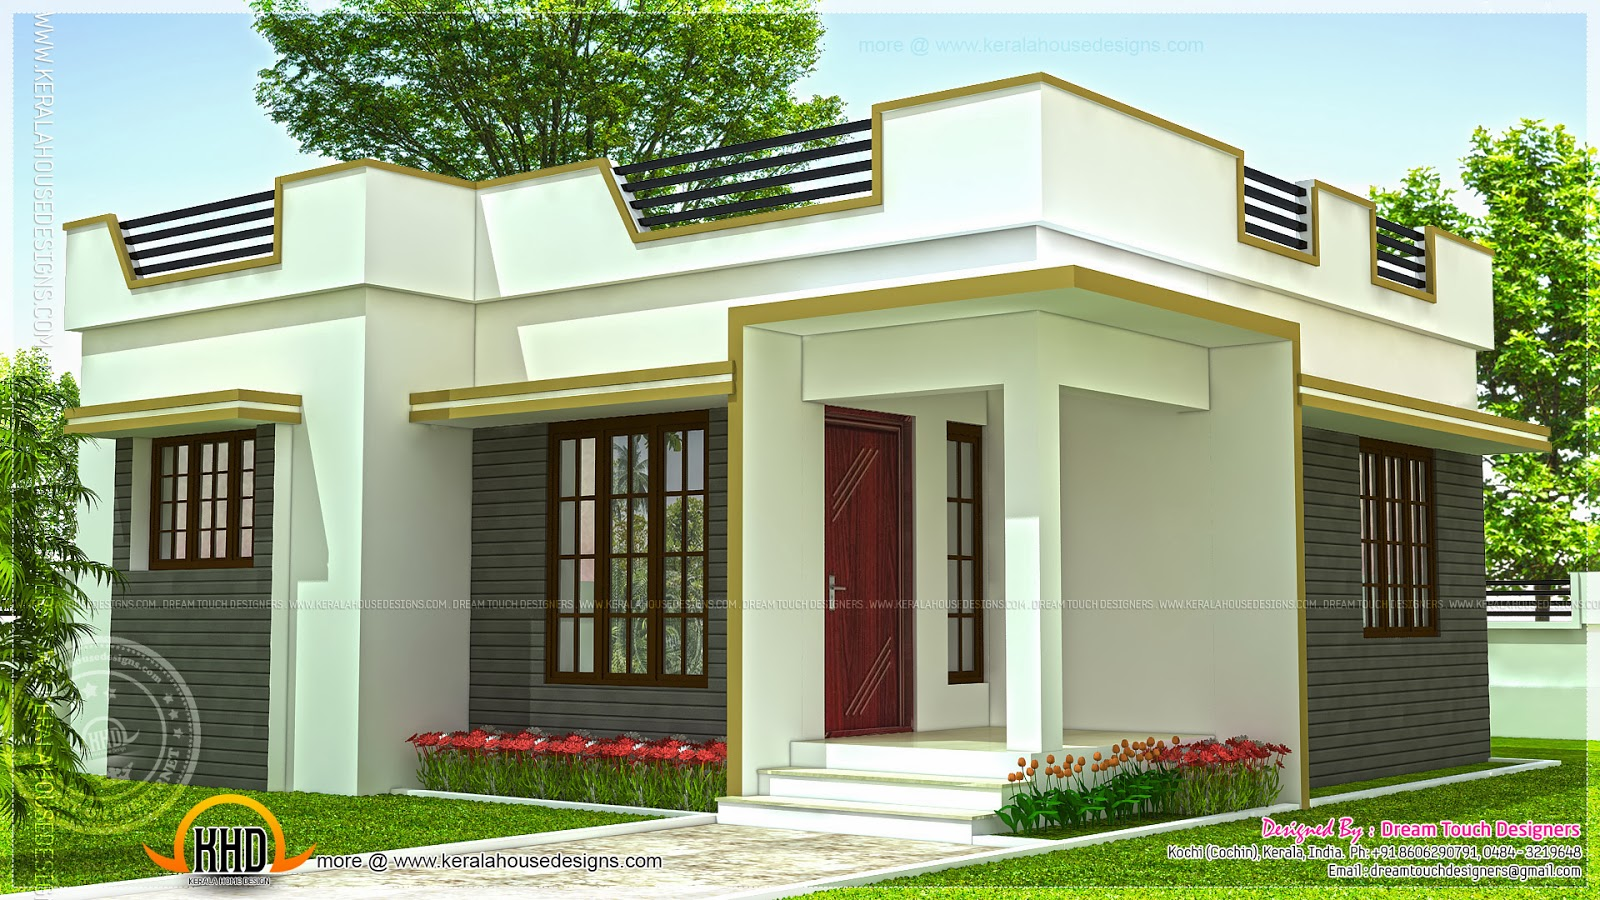 35 small and simple but beautiful house with roof deck Design my home